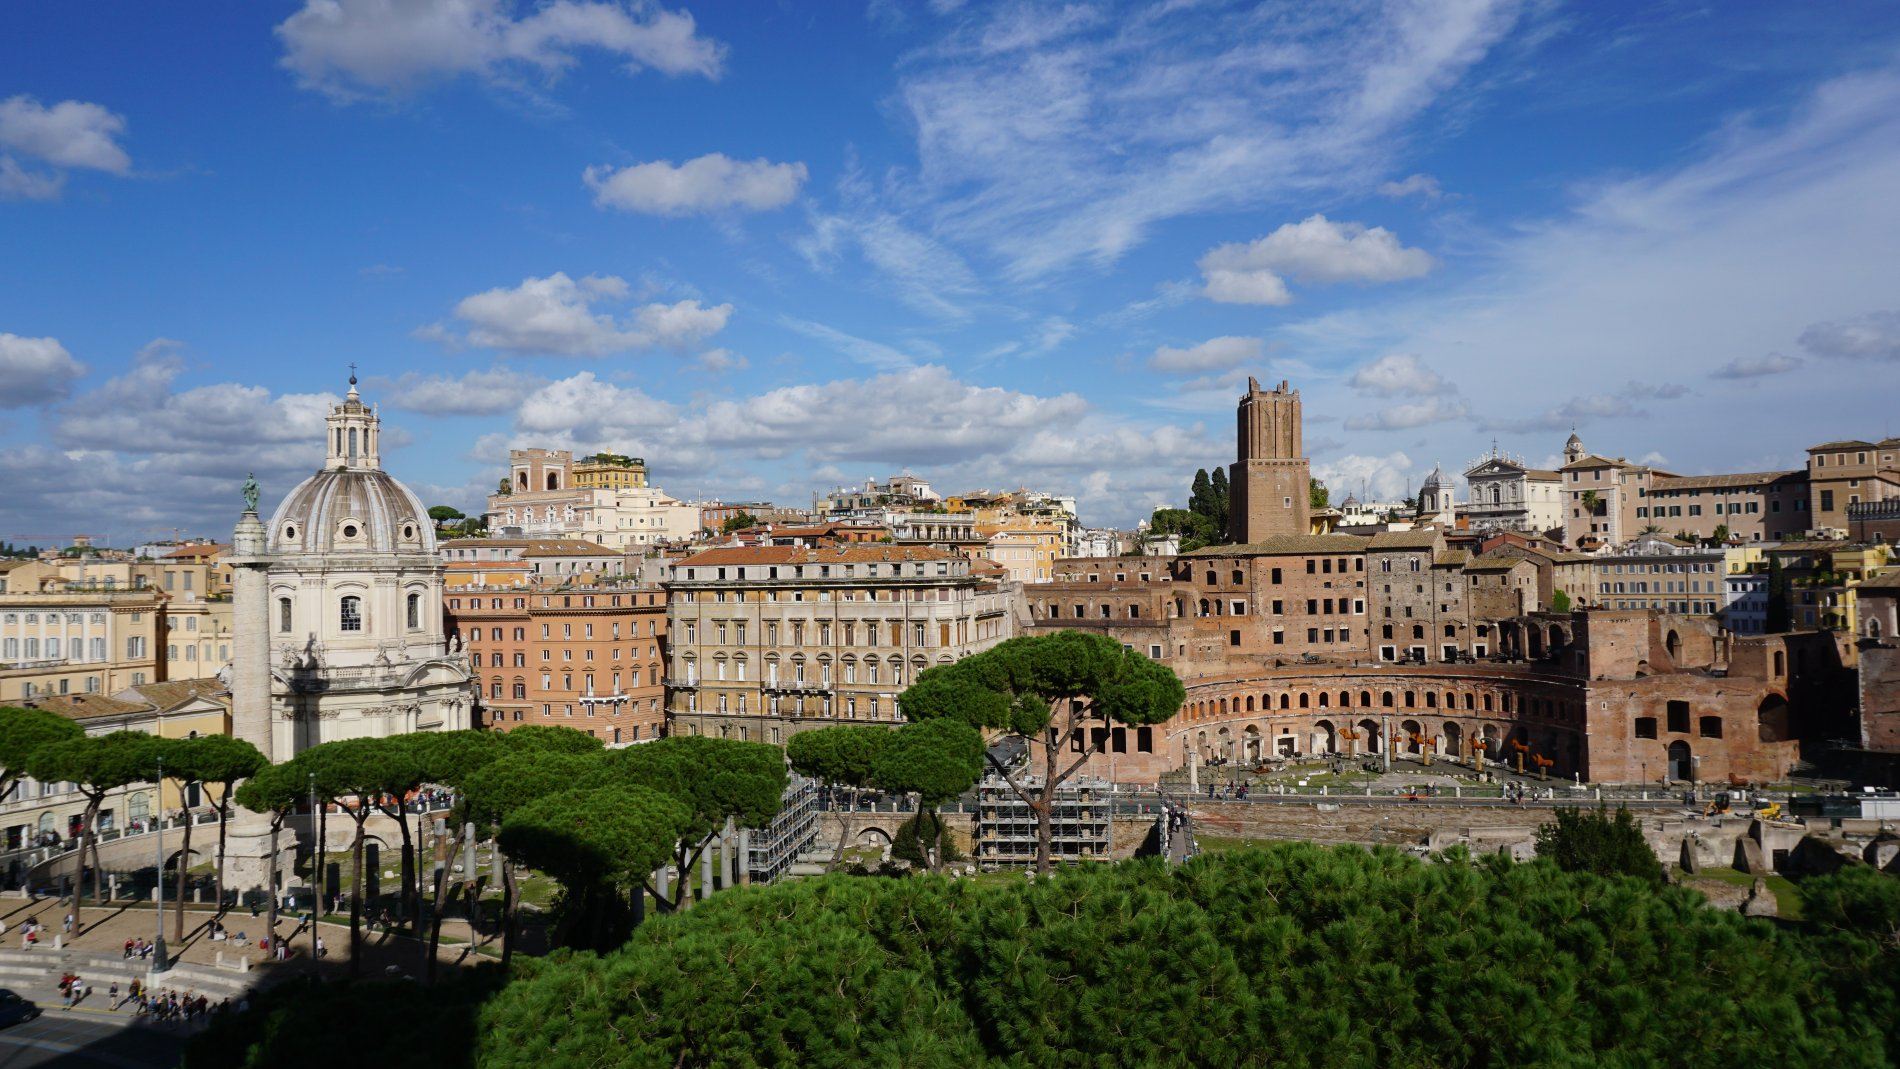 View from Il Vittoriano. Source: Truevoyagers